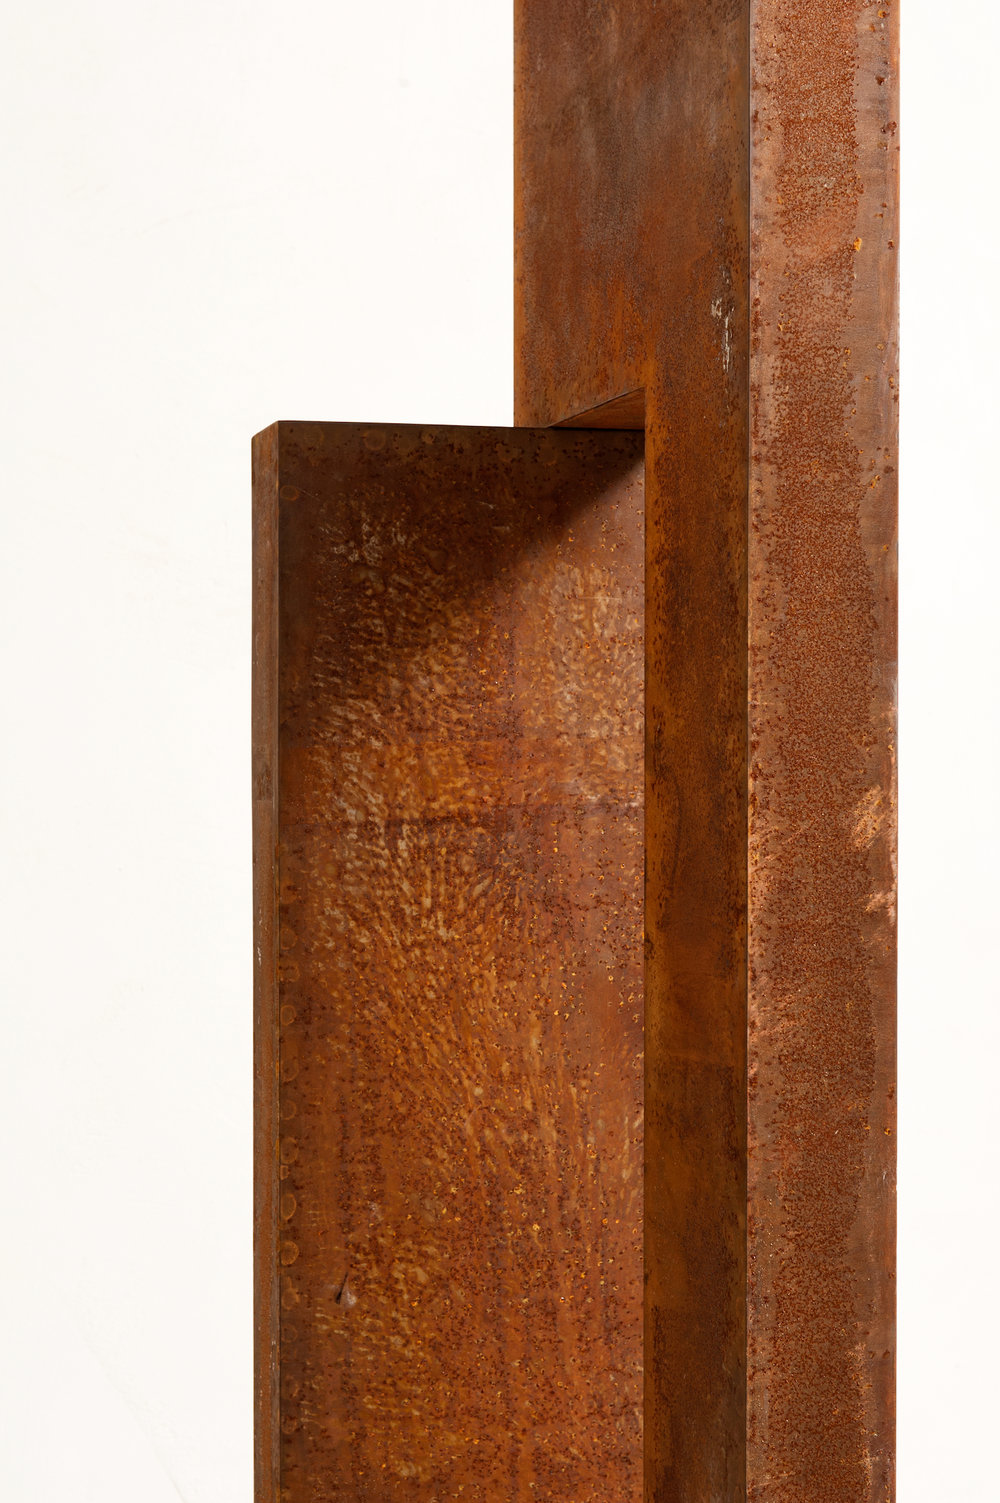 VOID X . 208 x 43 x 9cm (aggregate dimensions) . corten steel . 2015 . photo: Iemke Ruige